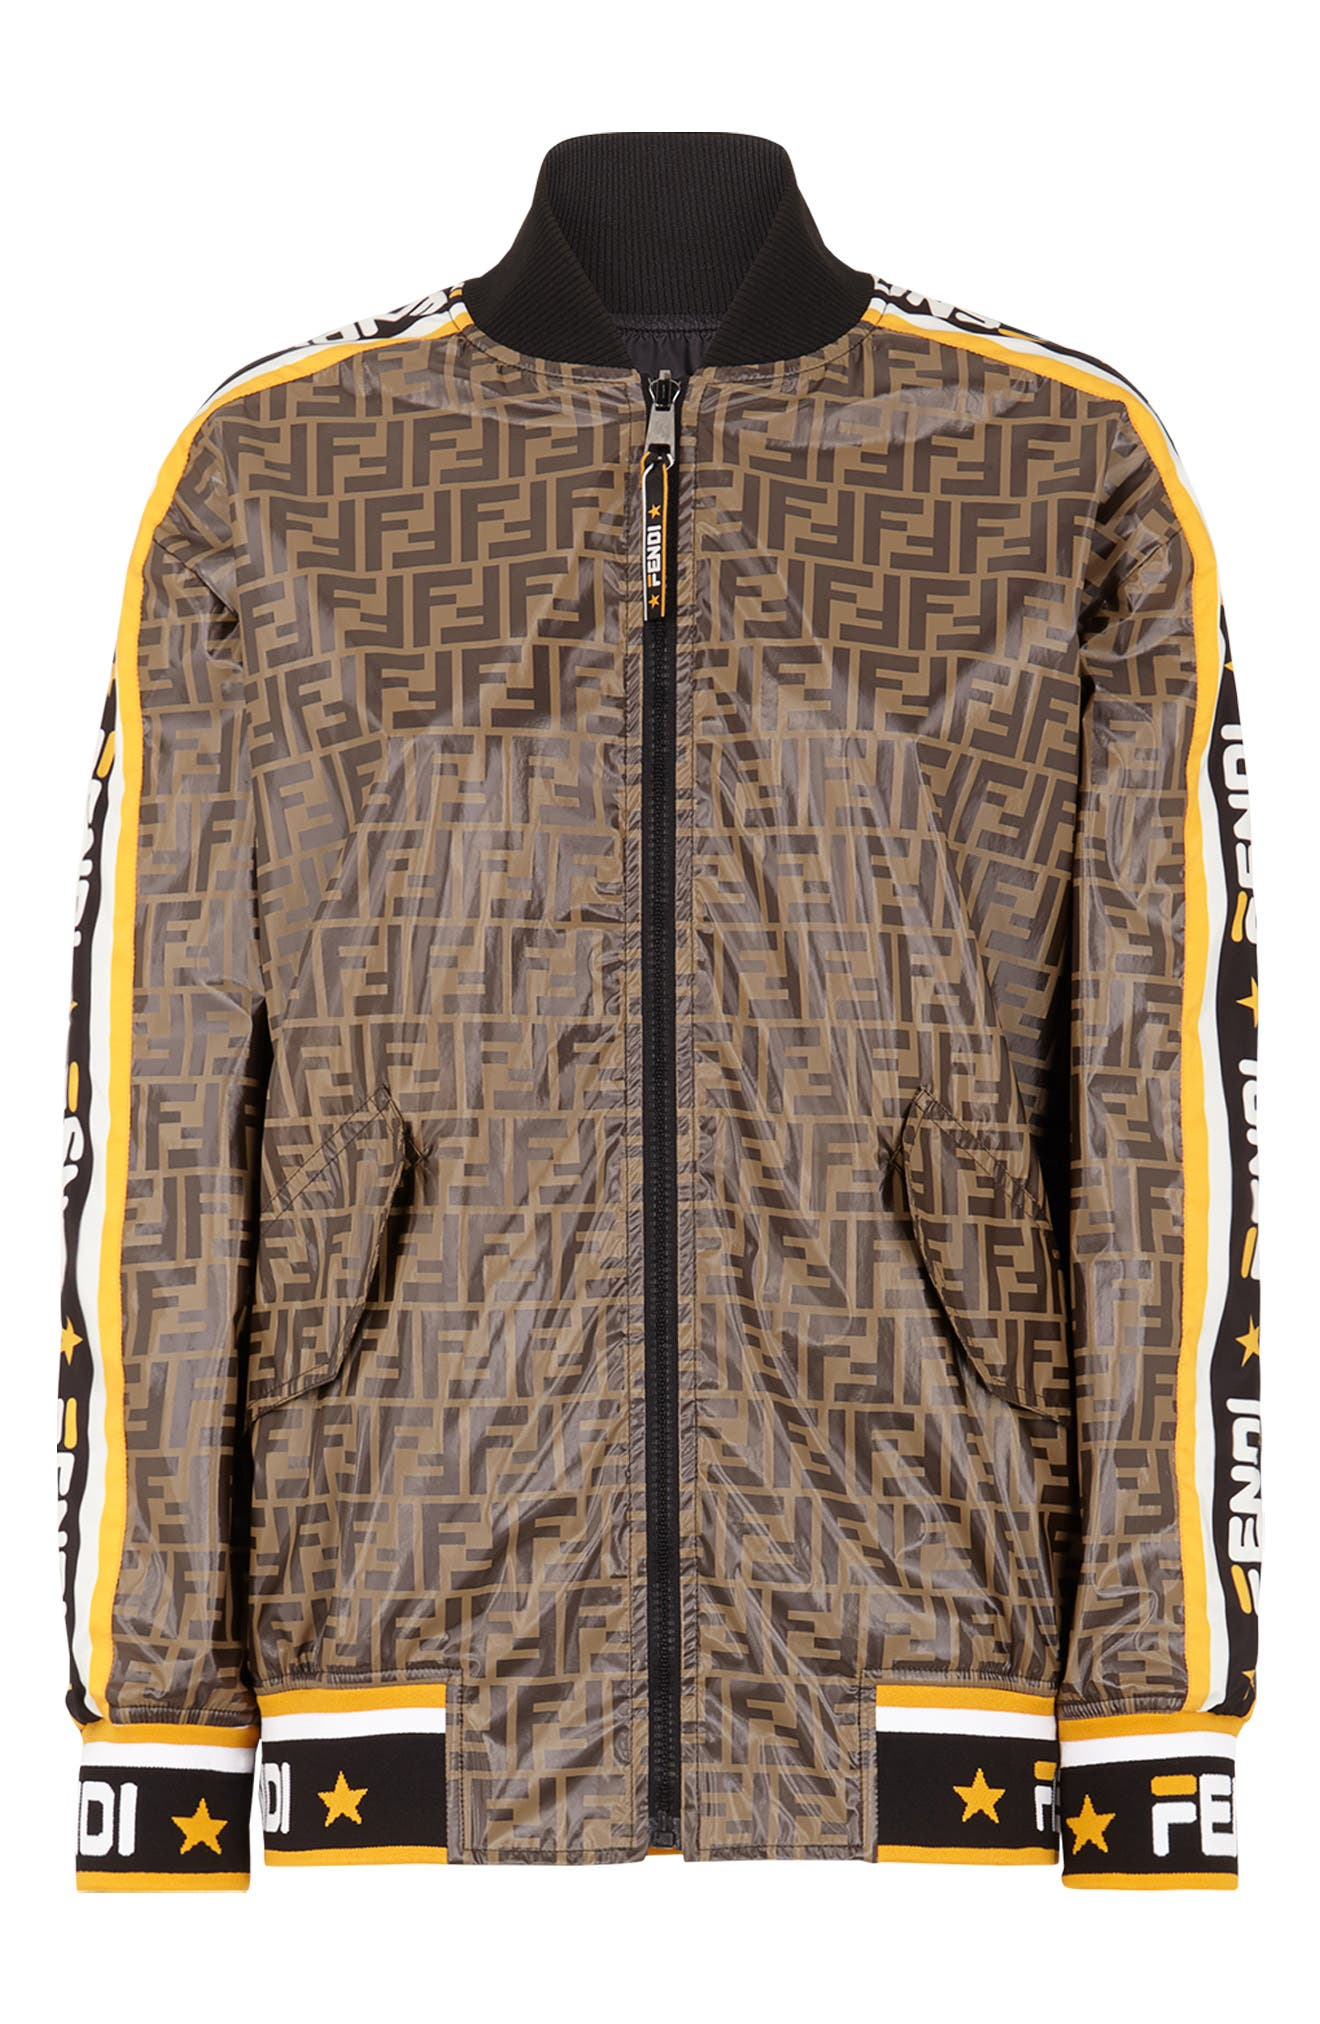 FENDI,                             x FILA Mania Logo Reversible Bomber Jacket,                             Alternate thumbnail 6, color,                             MULTI